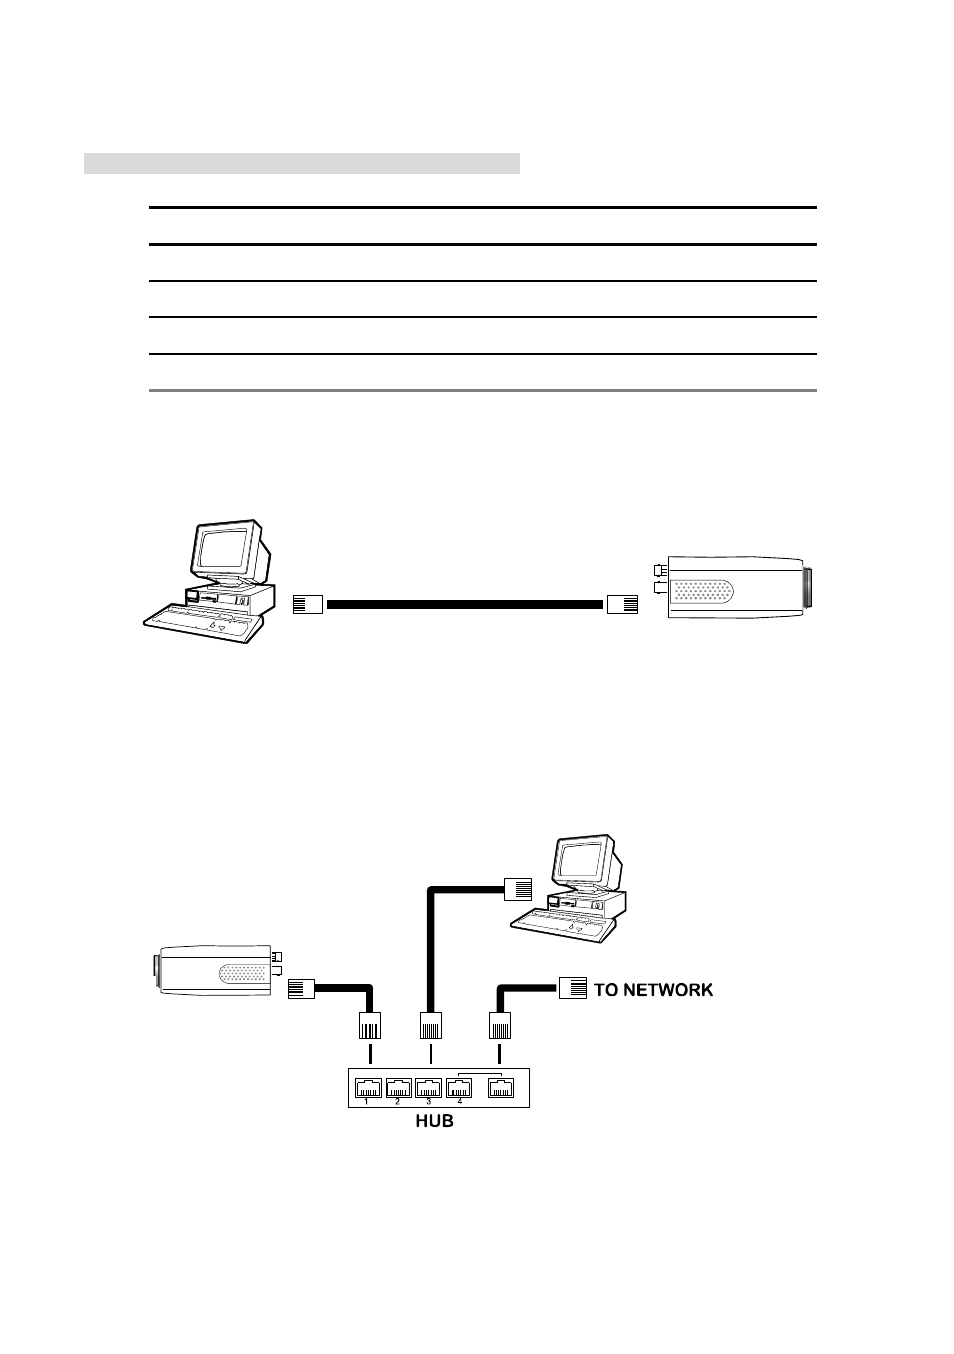 Network Configuration Able Onnections Ipx Ddk 1700d User Manual Cable For Connecting Computer To A Hub Or Switch Straight Through Page 15 108